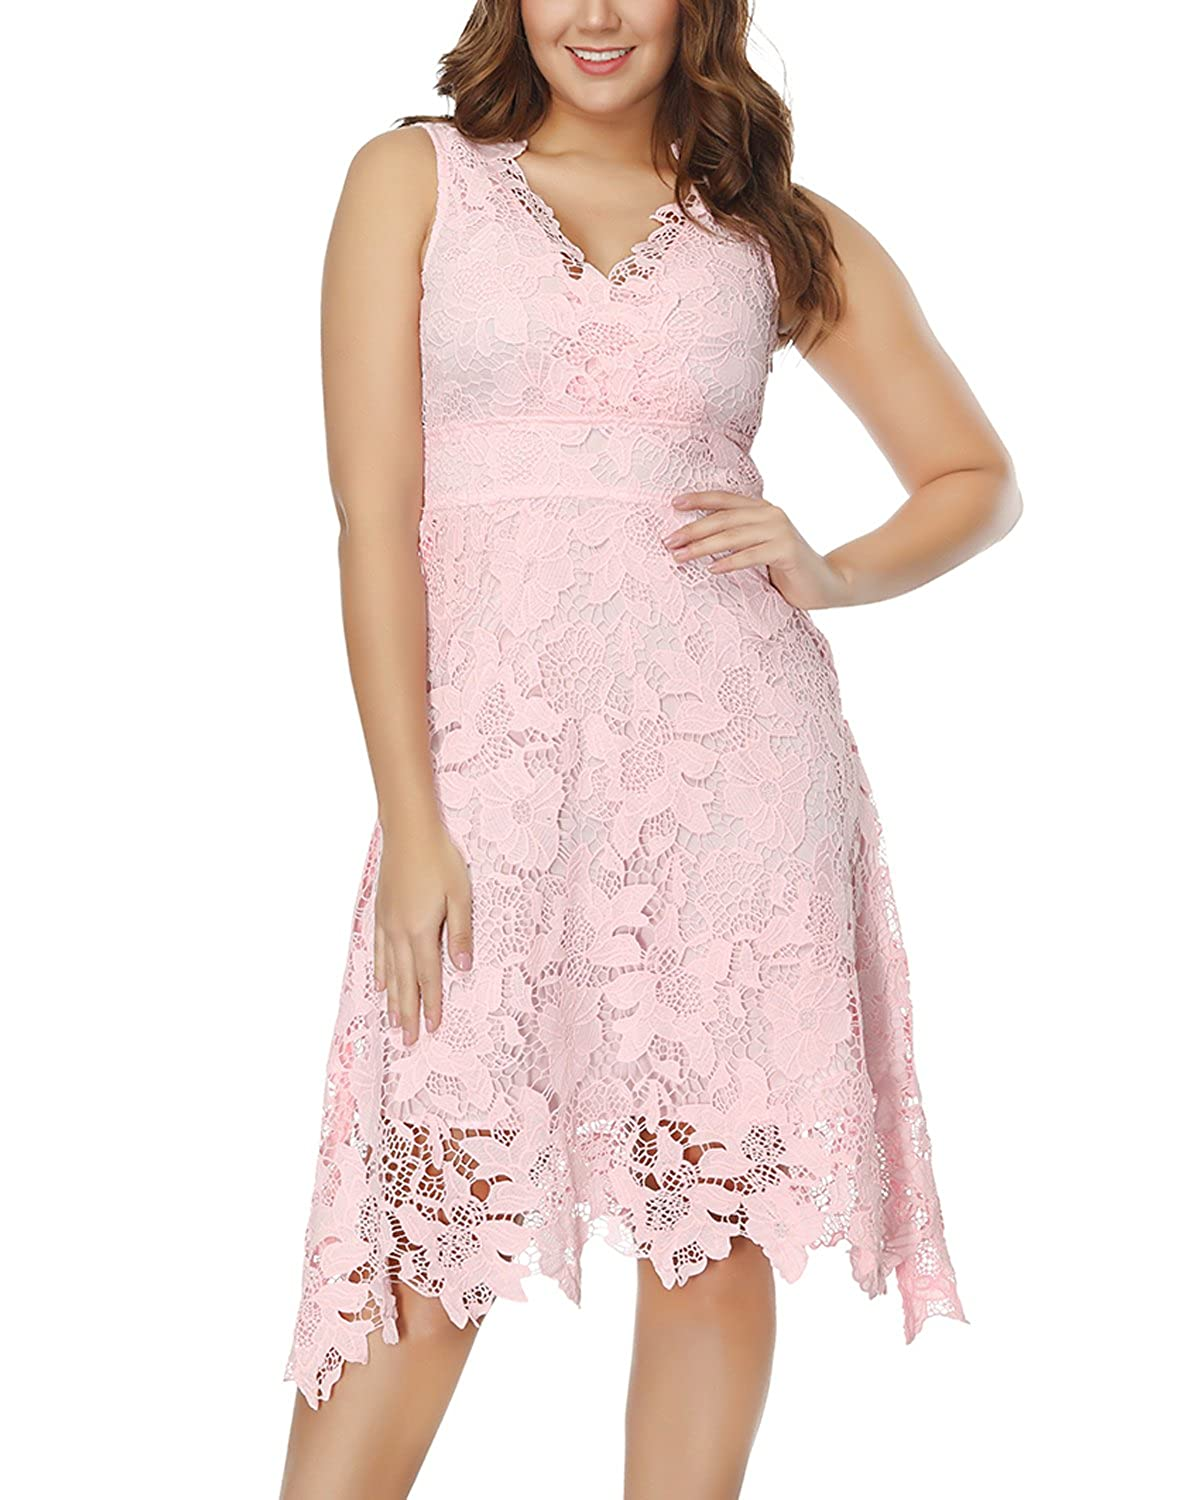 KIMILILY Womens V Neck Elegant Floral Lace Prom Cocktail Dress at Amazon Womens Clothing store: